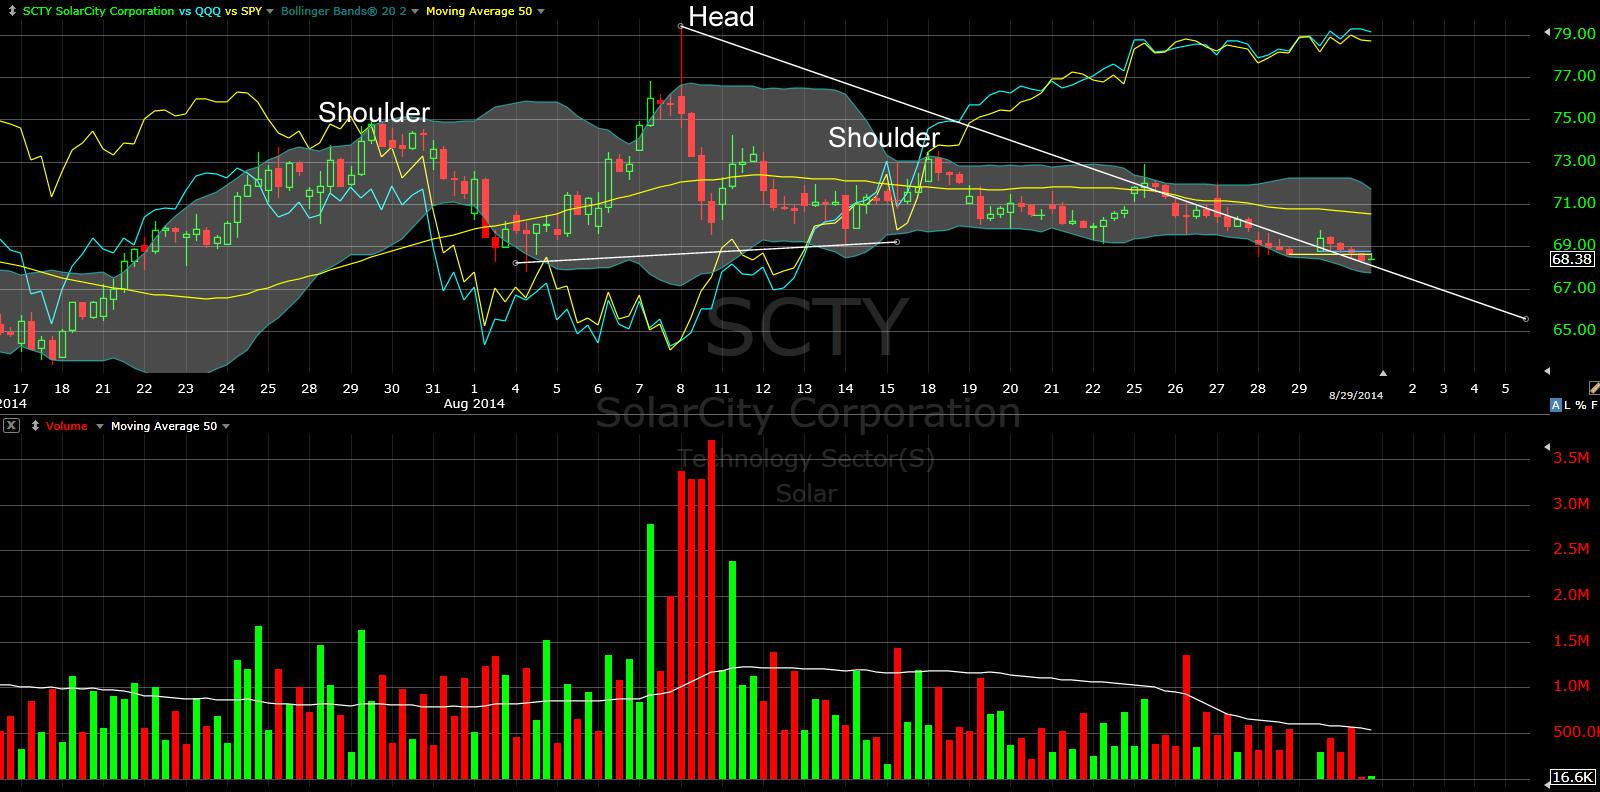 Is Solarcity The Quintessential Bubble Stock With Negative Catalysts